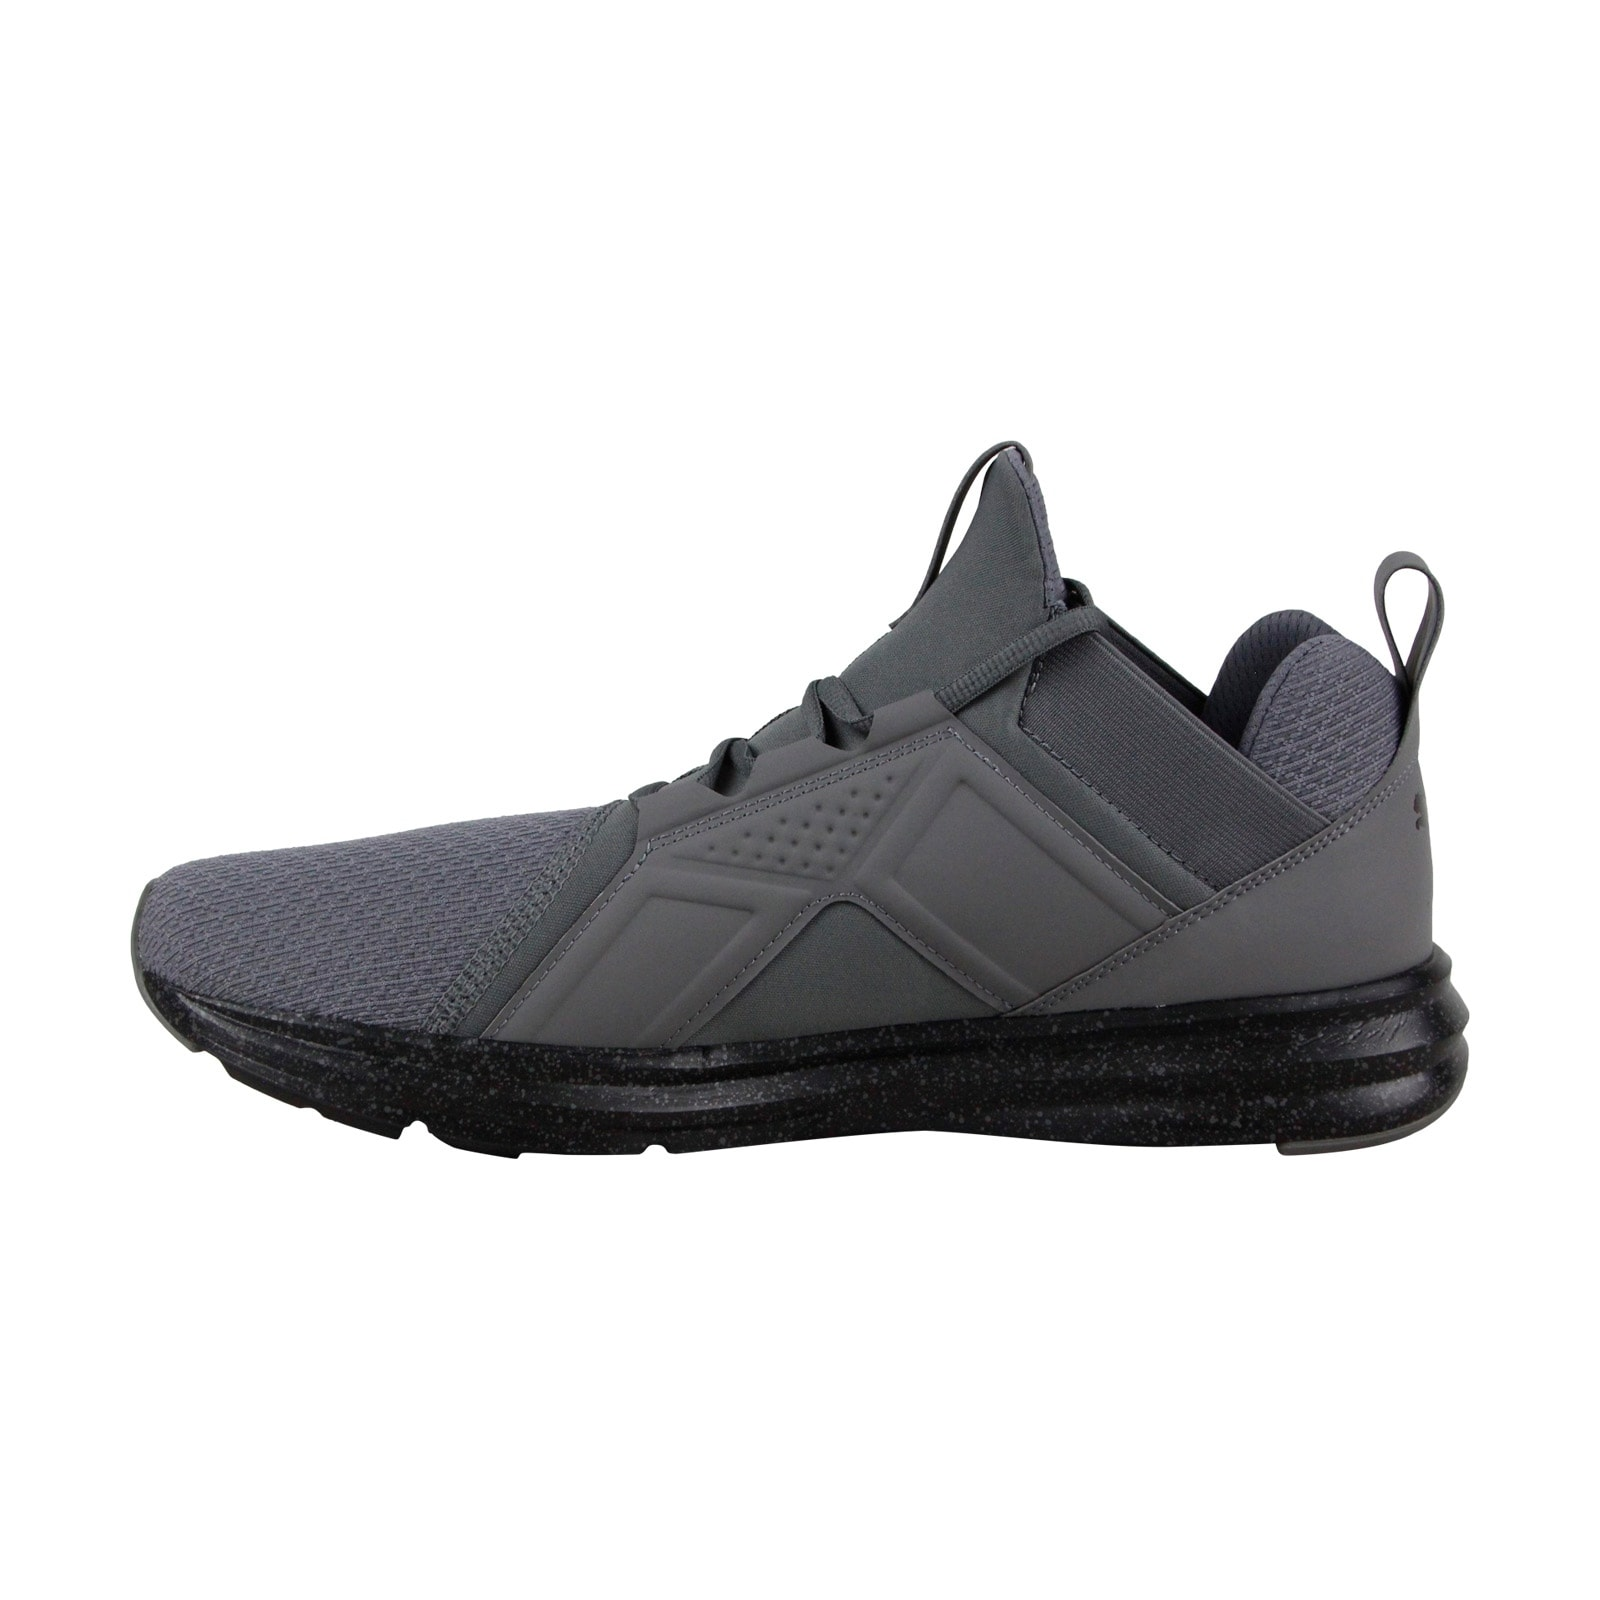 11c82473aa76 Shop Puma Enzo Speckle Mens Gray Textile Athletic Lace Up Running Shoes -  Free Shipping Today - Overstock - 25364972